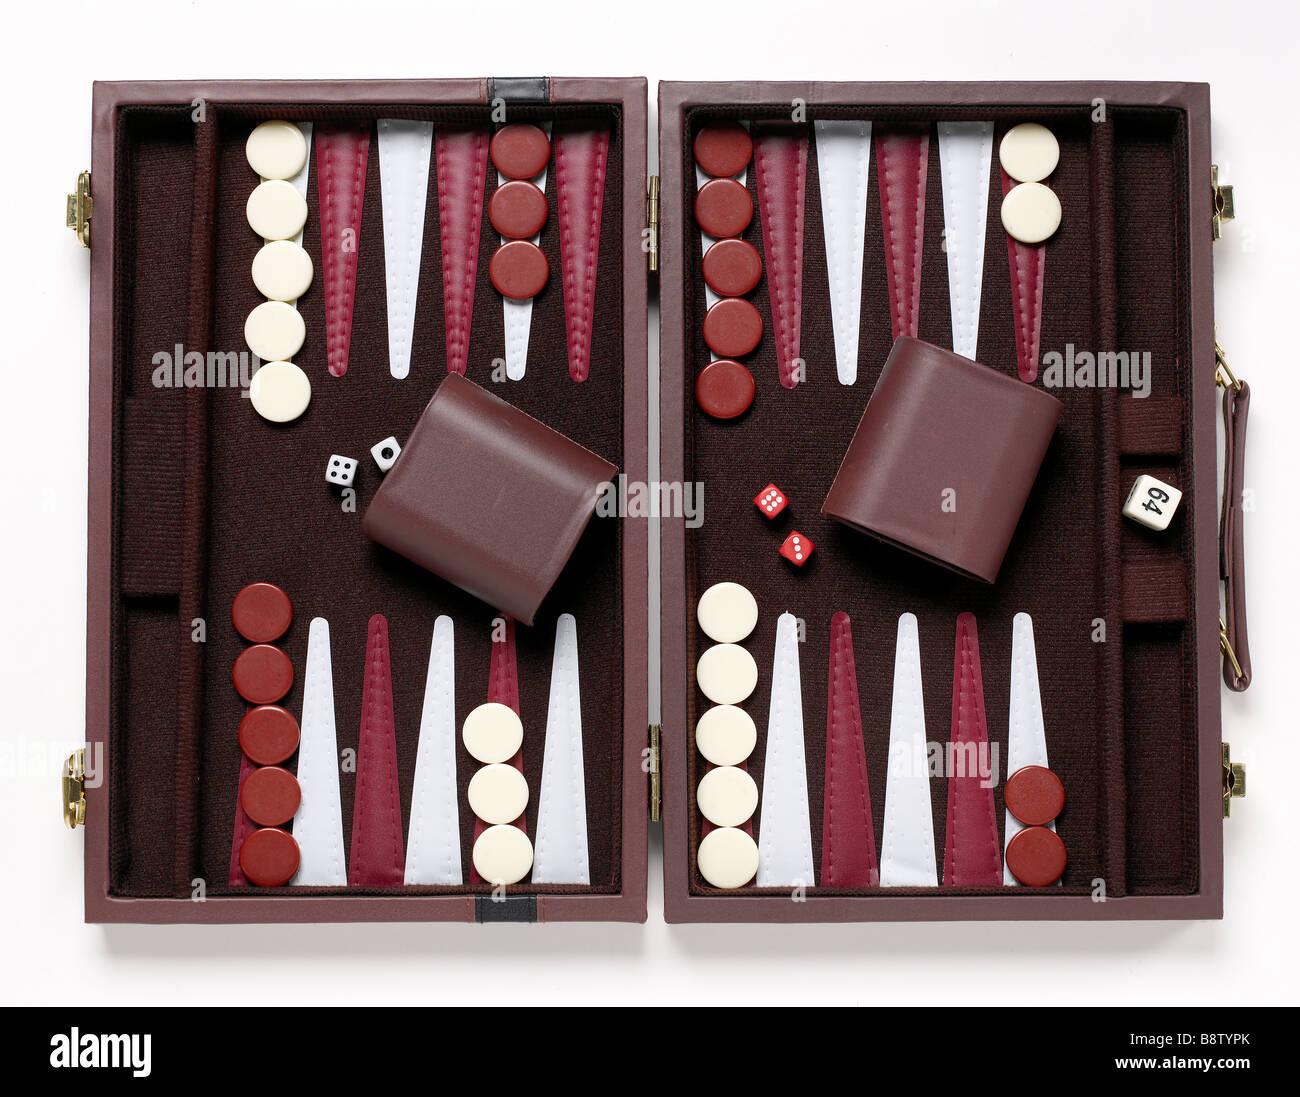 Backgammon Game Elevated View Stock Photo 22676267 Alamy